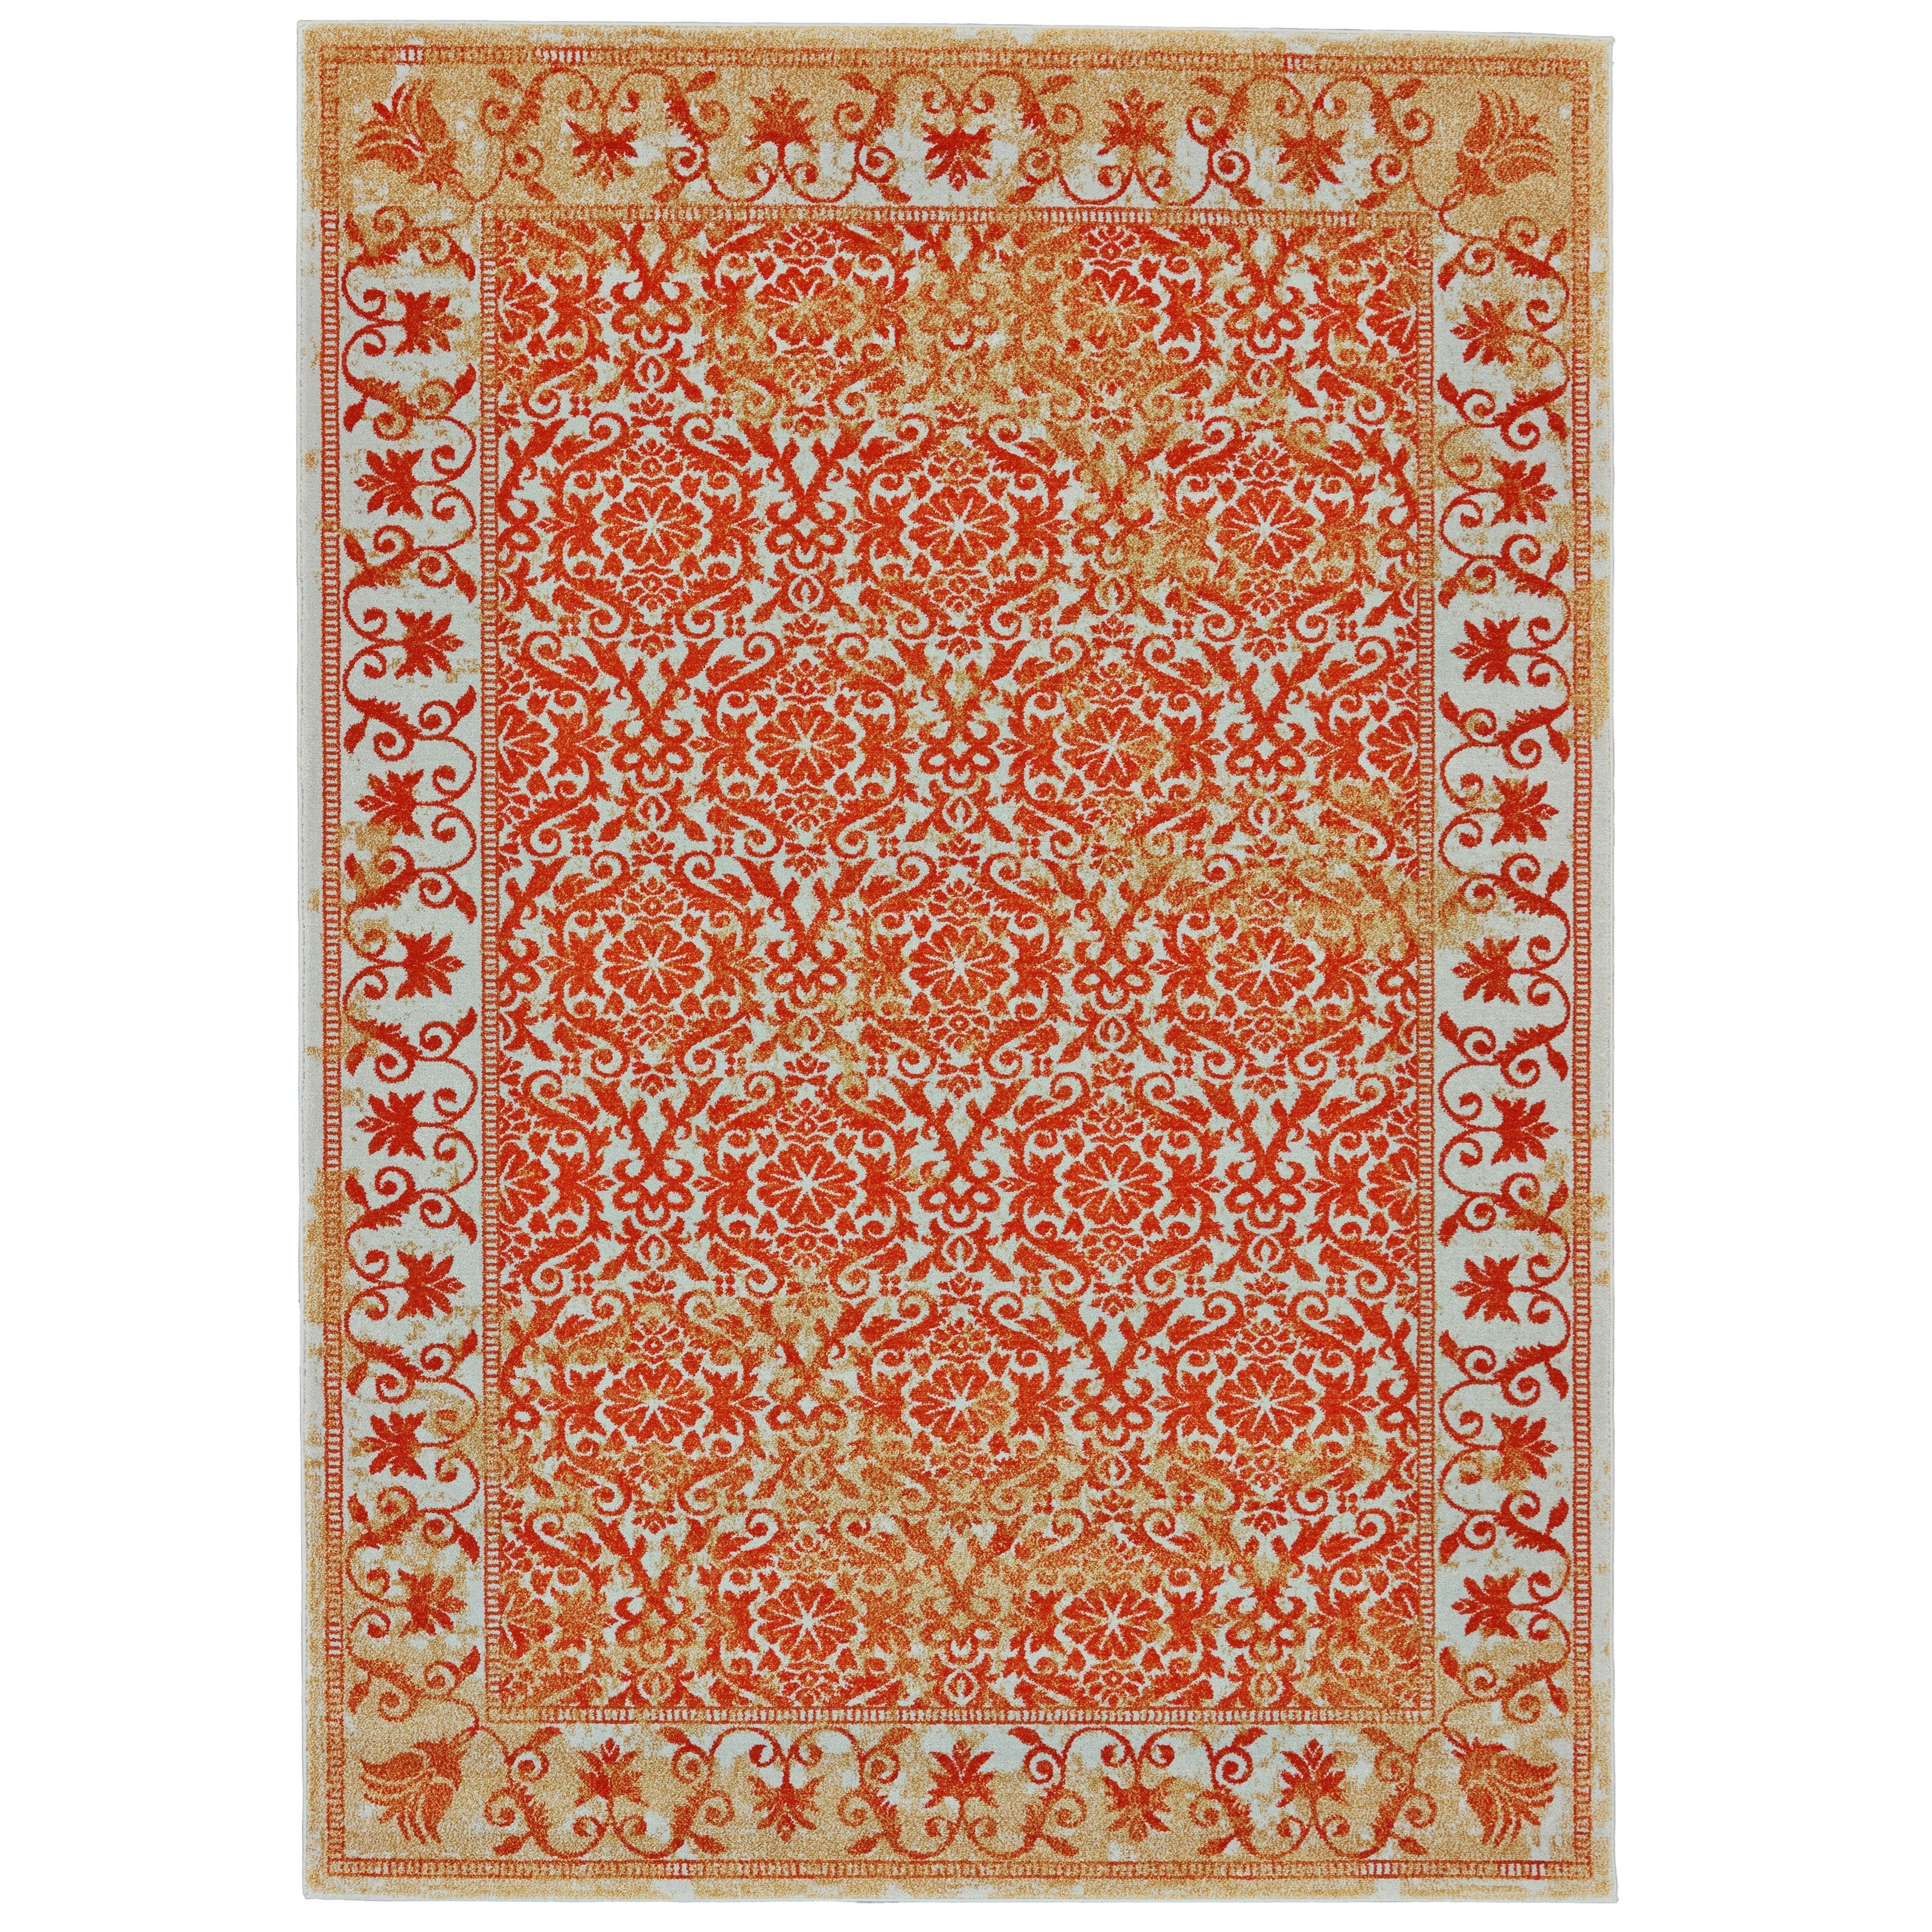 "Archean Melon 10' X 13'-2"" Area Rug by Feizy Rugs at Sprintz Furniture"